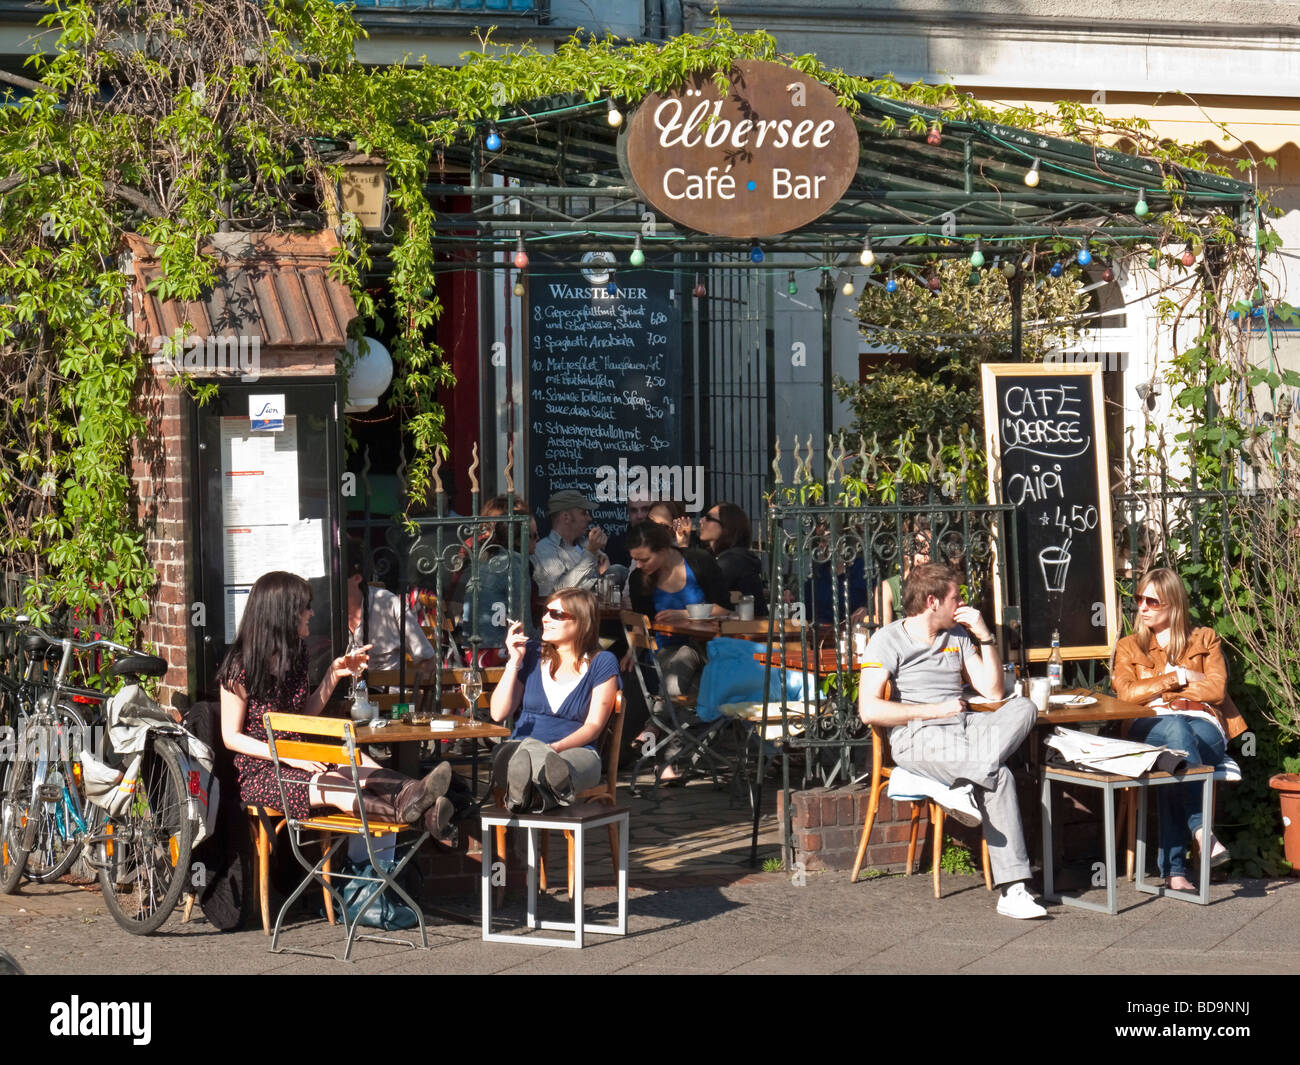 Cafe Uebersee Paul-Lincke-Ufer in Berlin Kreuzberg Stockbild